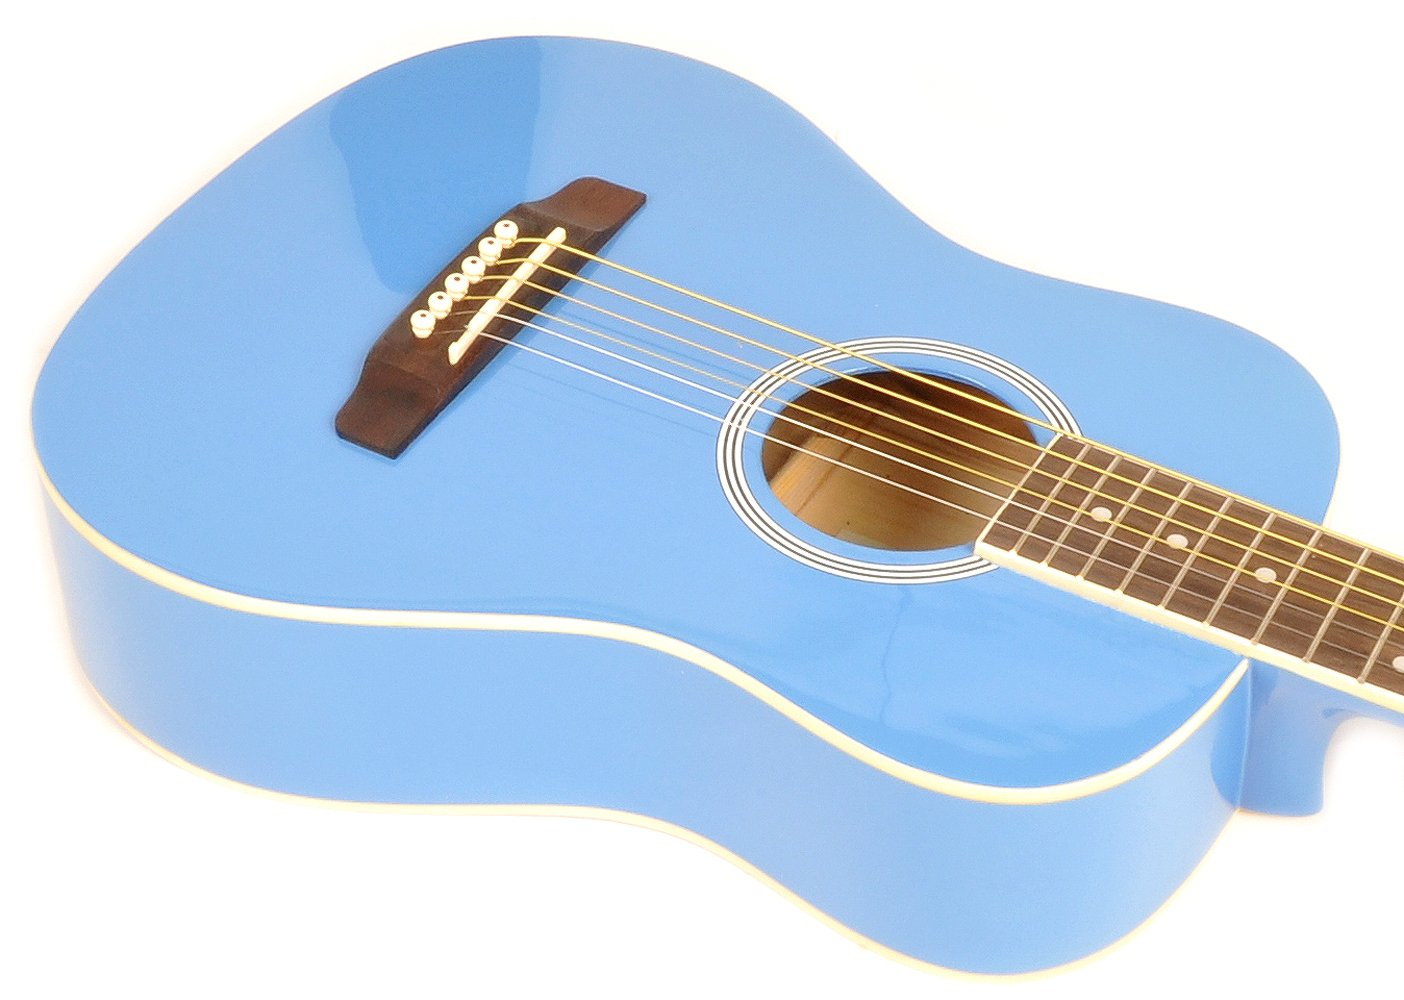 SX RSM 1 34 BBU 3/4 Size Bubblegum Blue Acoustic Guitar Package, Black with Carry Bag, Strap, and Guitar Picks Included by SX (Image #5)